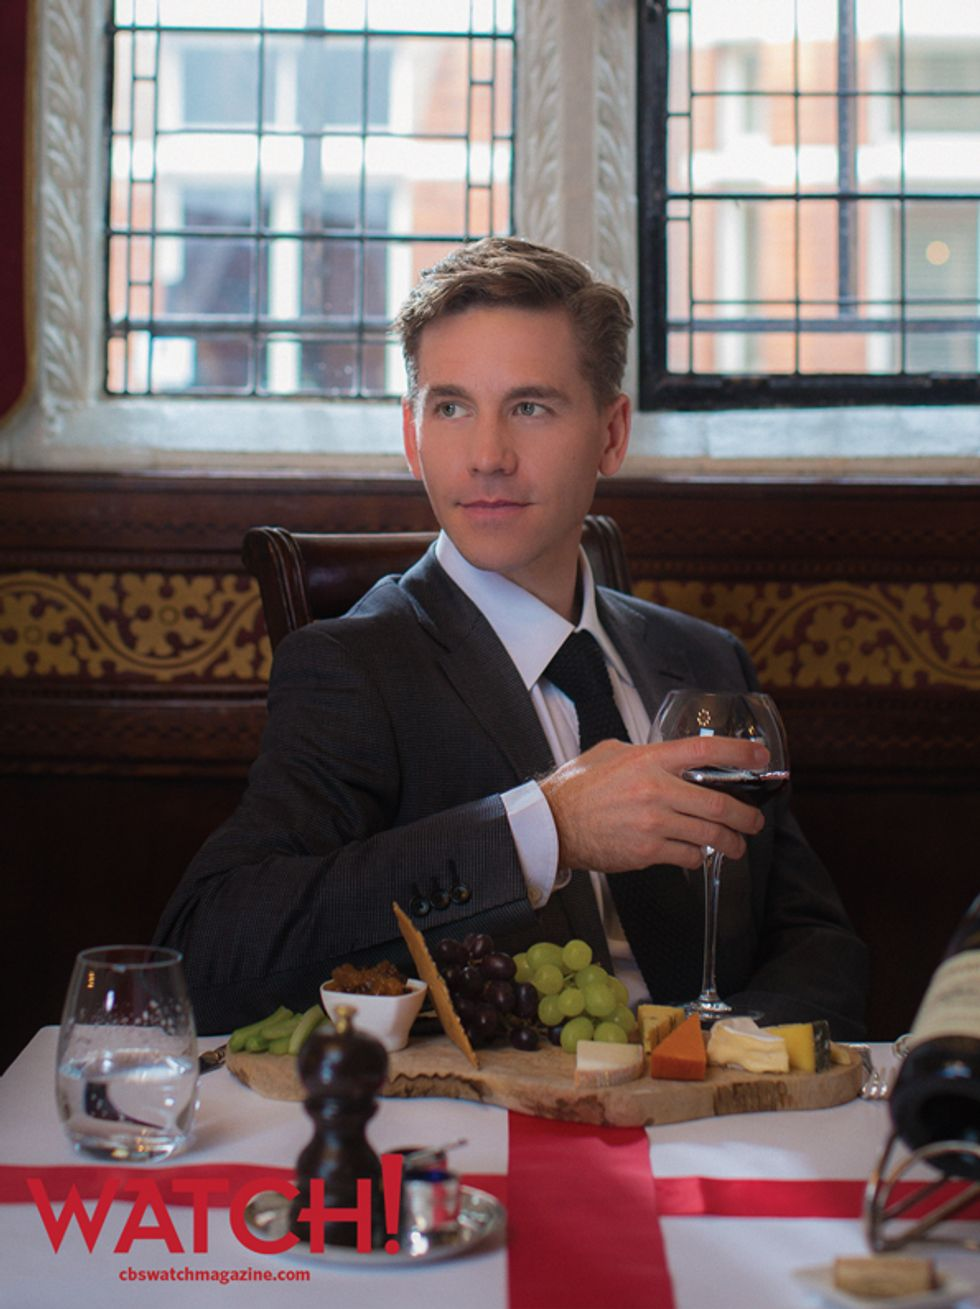 Brian Dietzen having a glass of red wine at a table with a charcuterie board